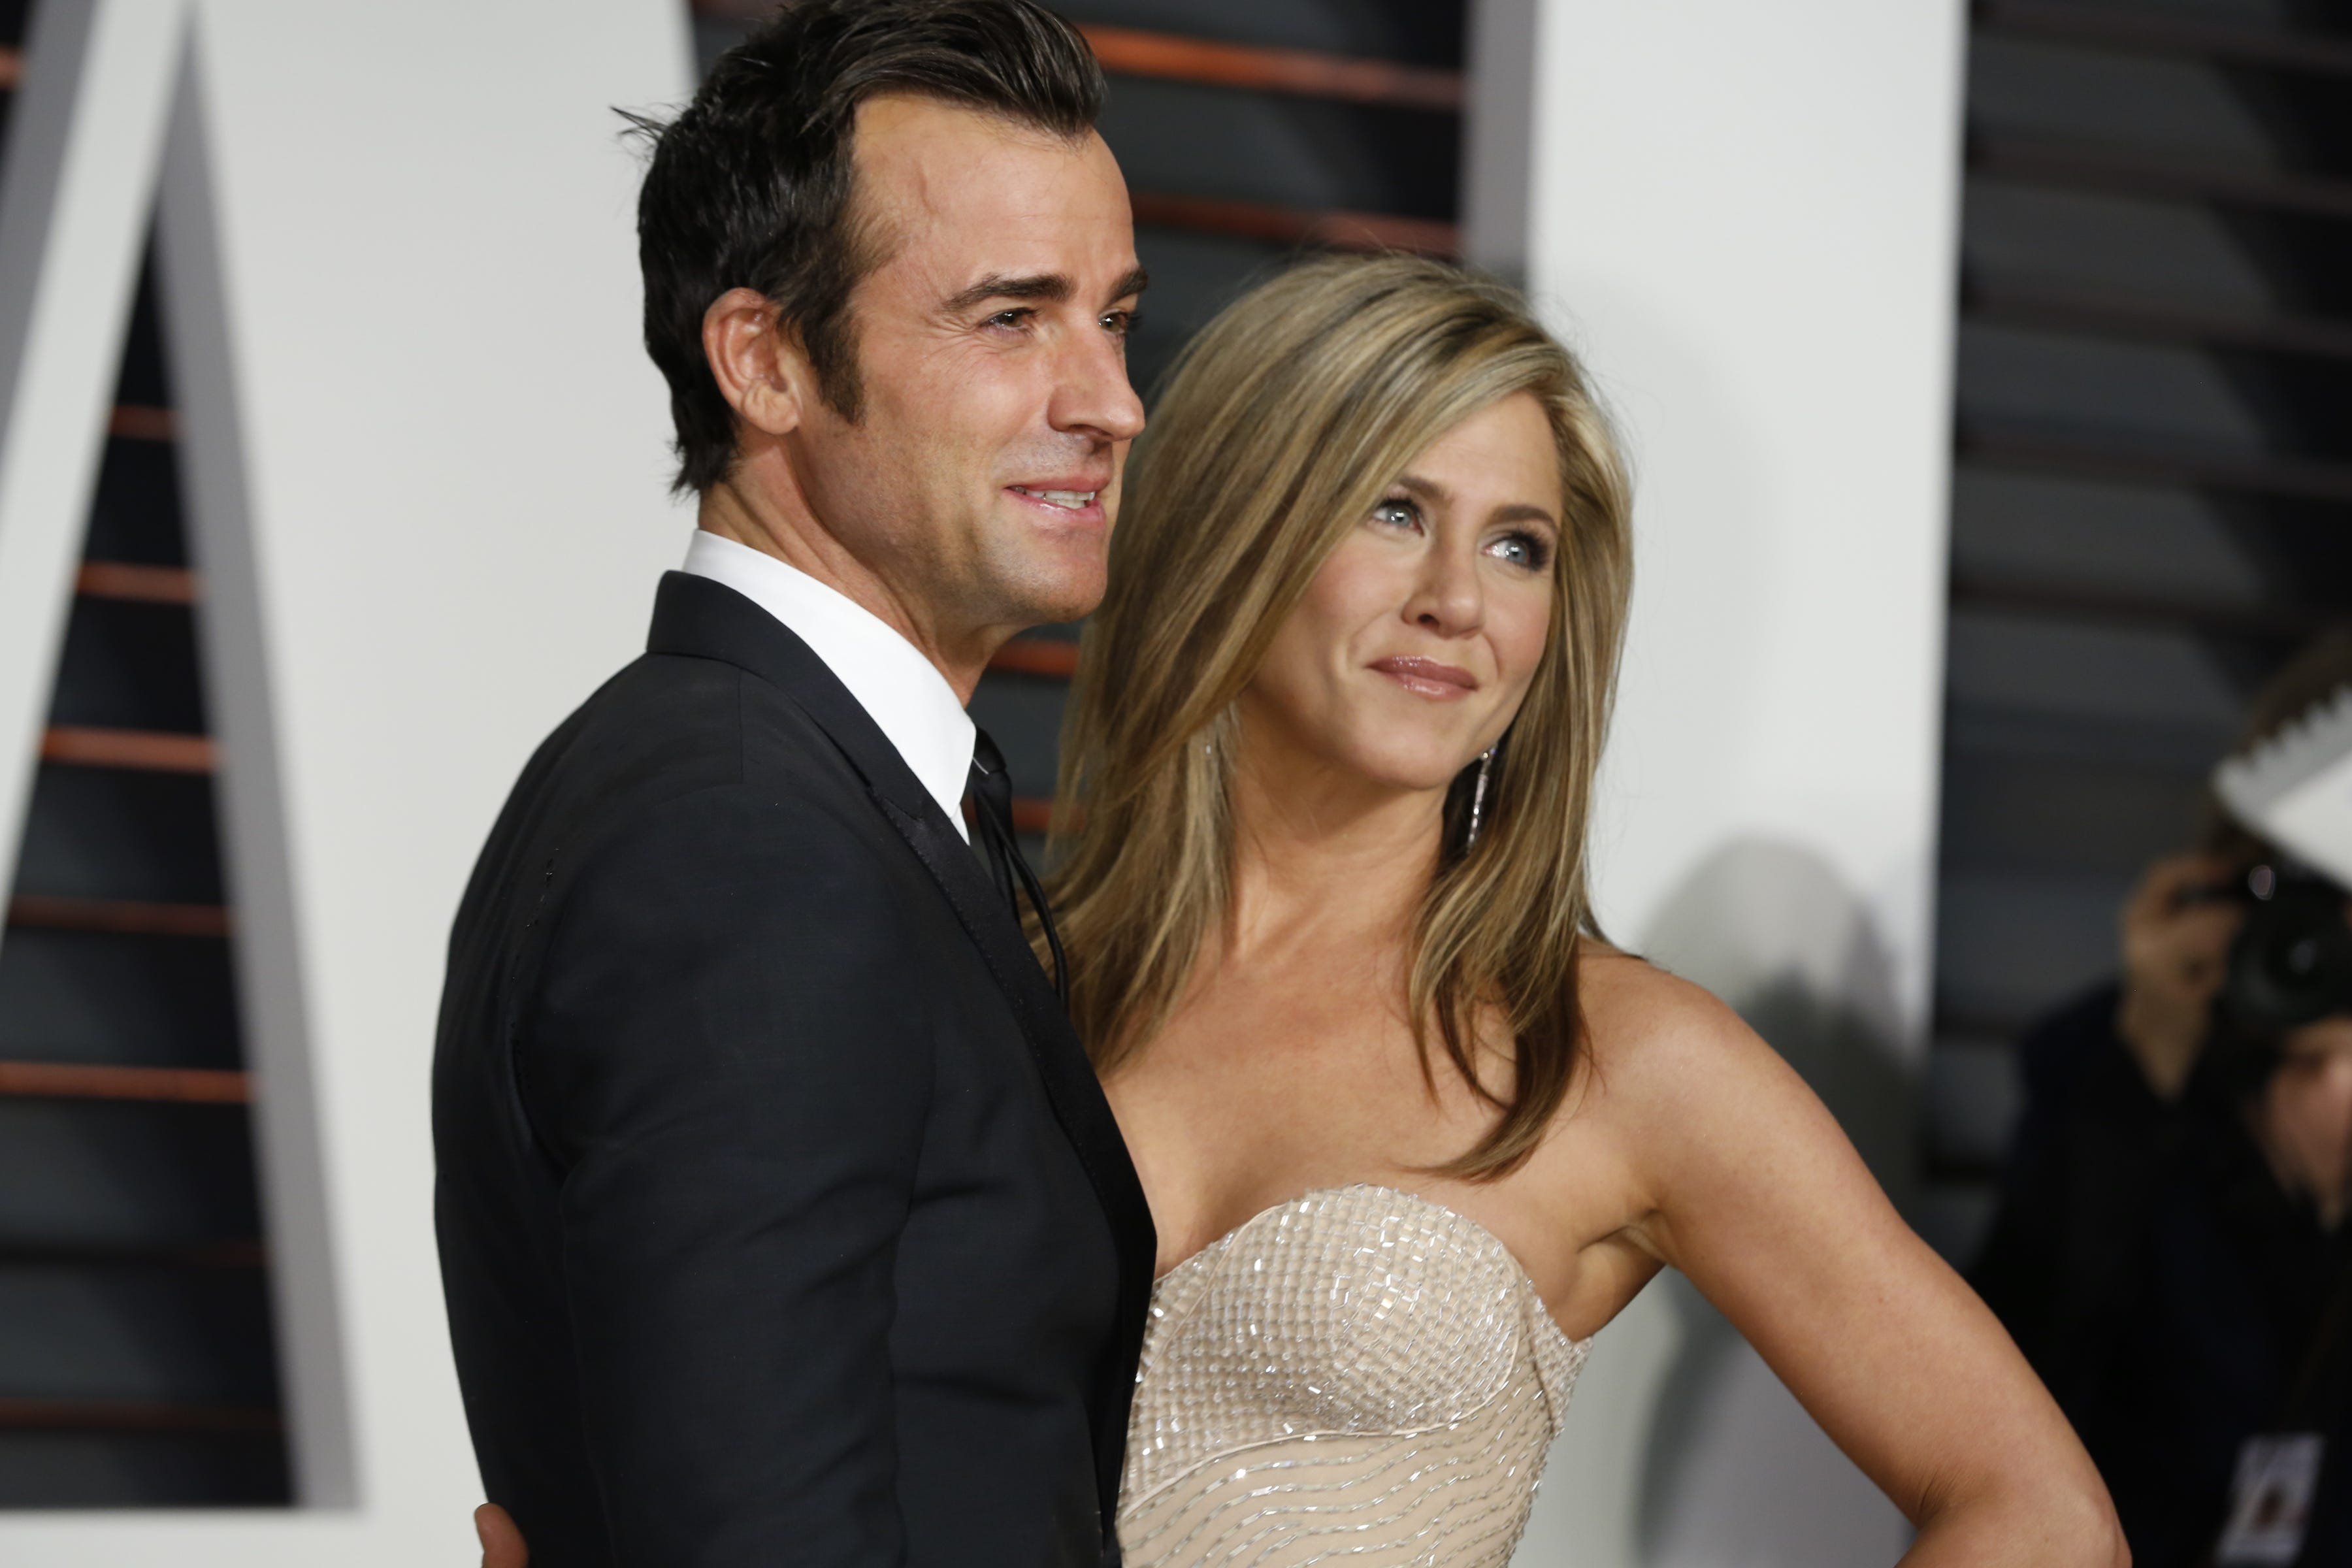 Exes Justin Theroux & Jennifer Aniston Reunite To Mourn The Loss Of Their Dog